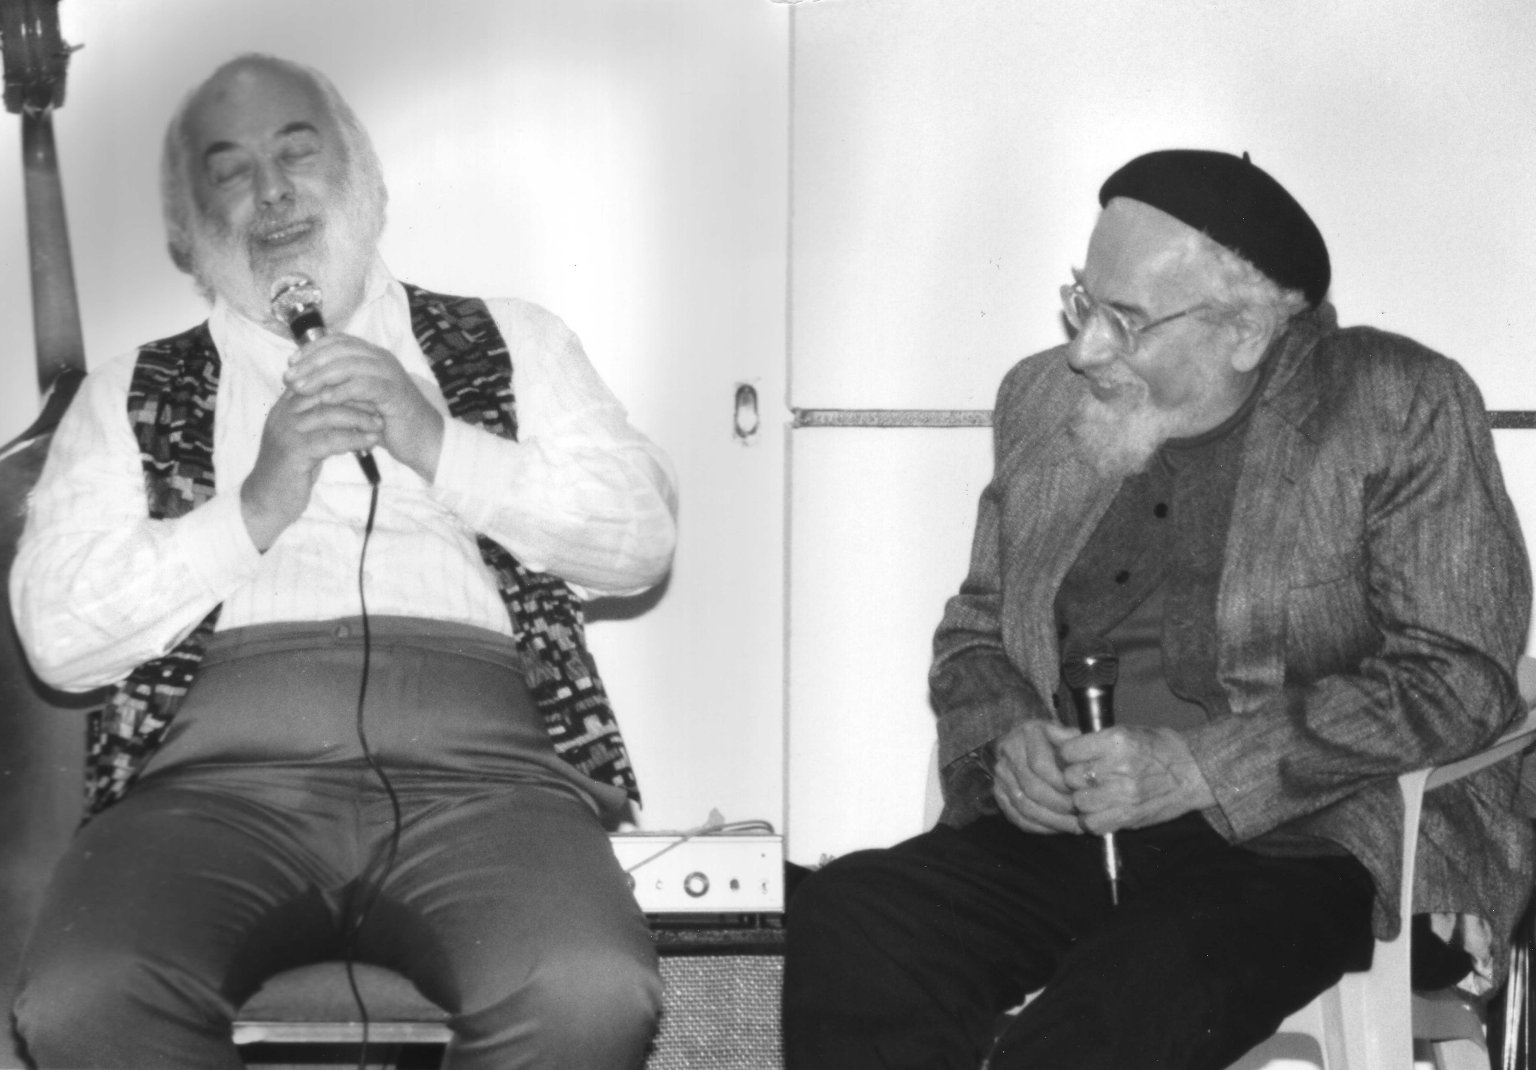 Rabbi Shlomo Carlebach and Rabbi Zalman Schachter-Shalomi speaking in Berkeley, California, in March of 1994.